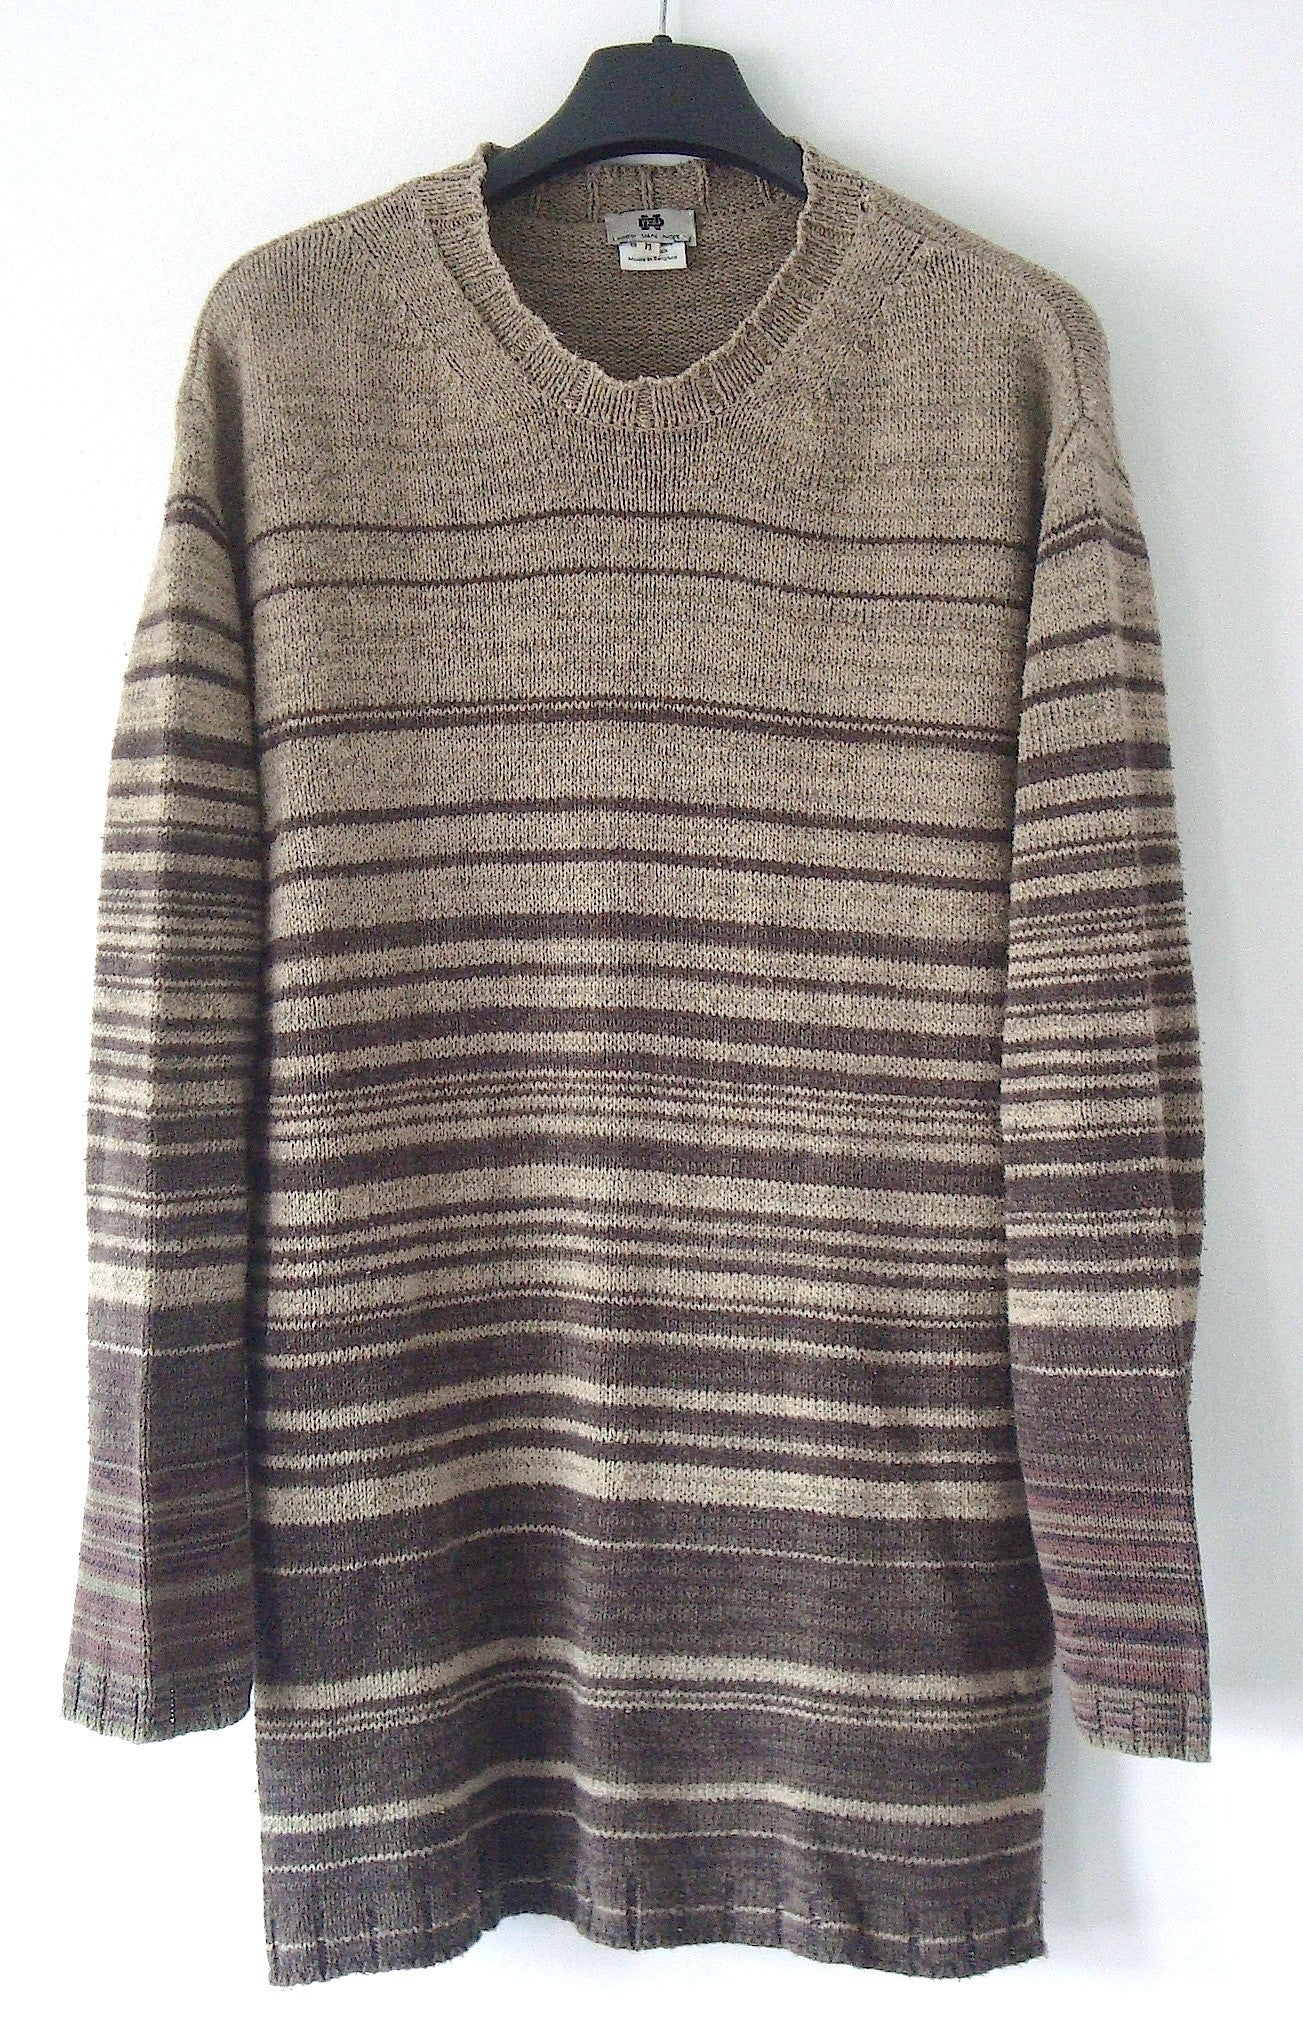 1998 Silk/Cotton Oversized Sweater